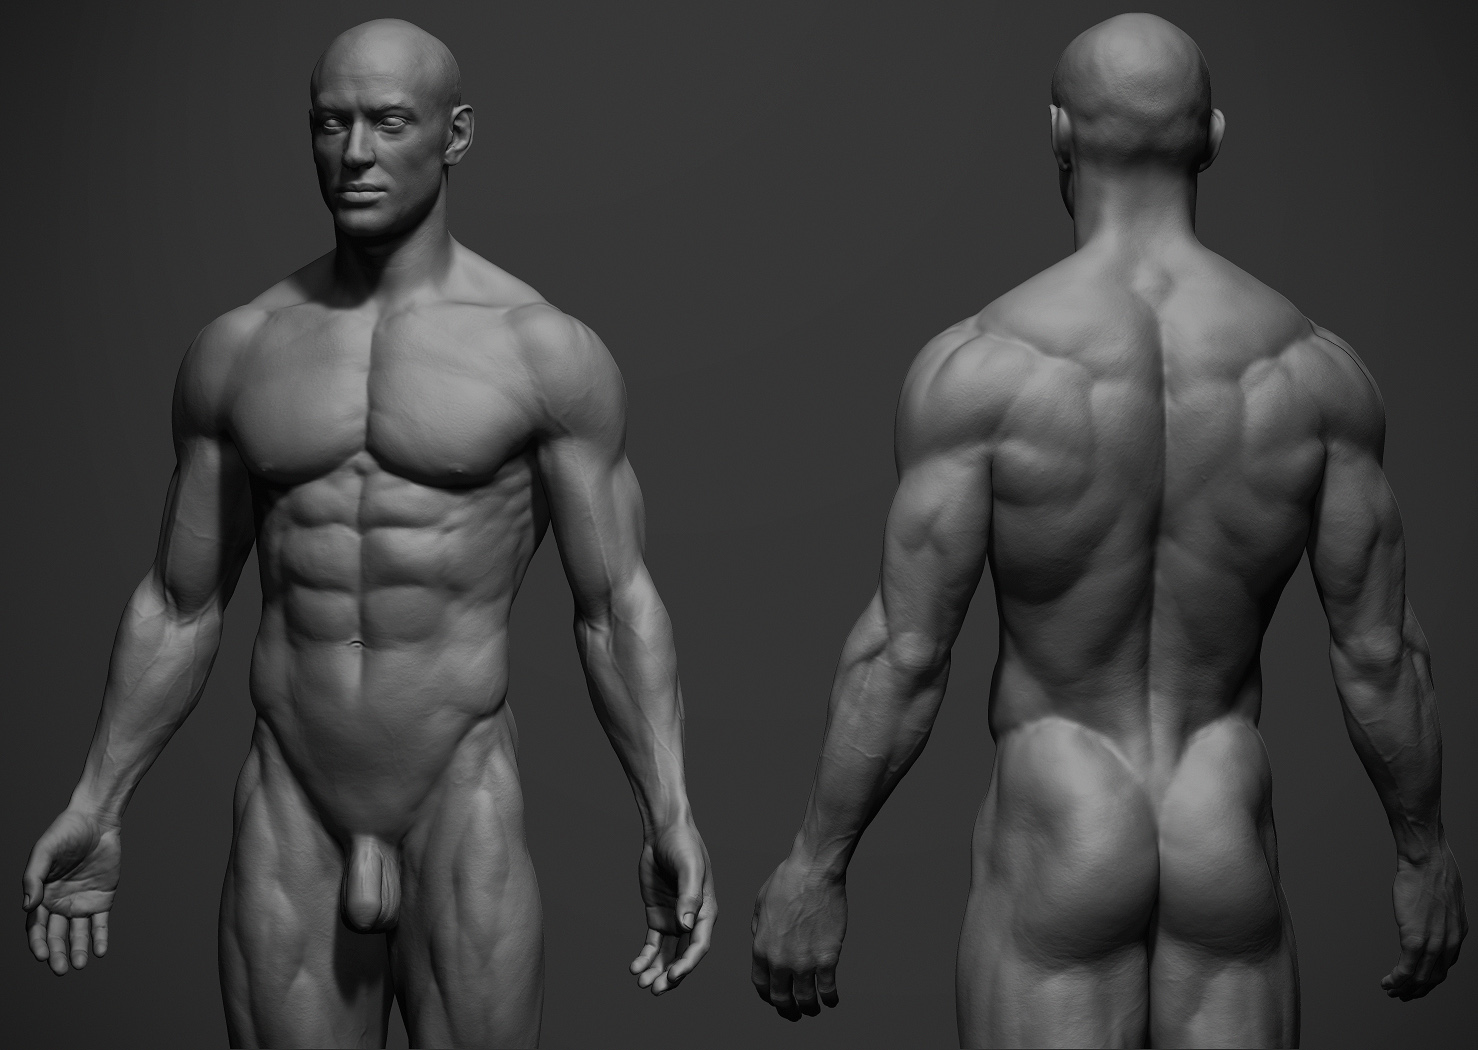 the male anatomy gallery - learn human anatomy image, Human Body